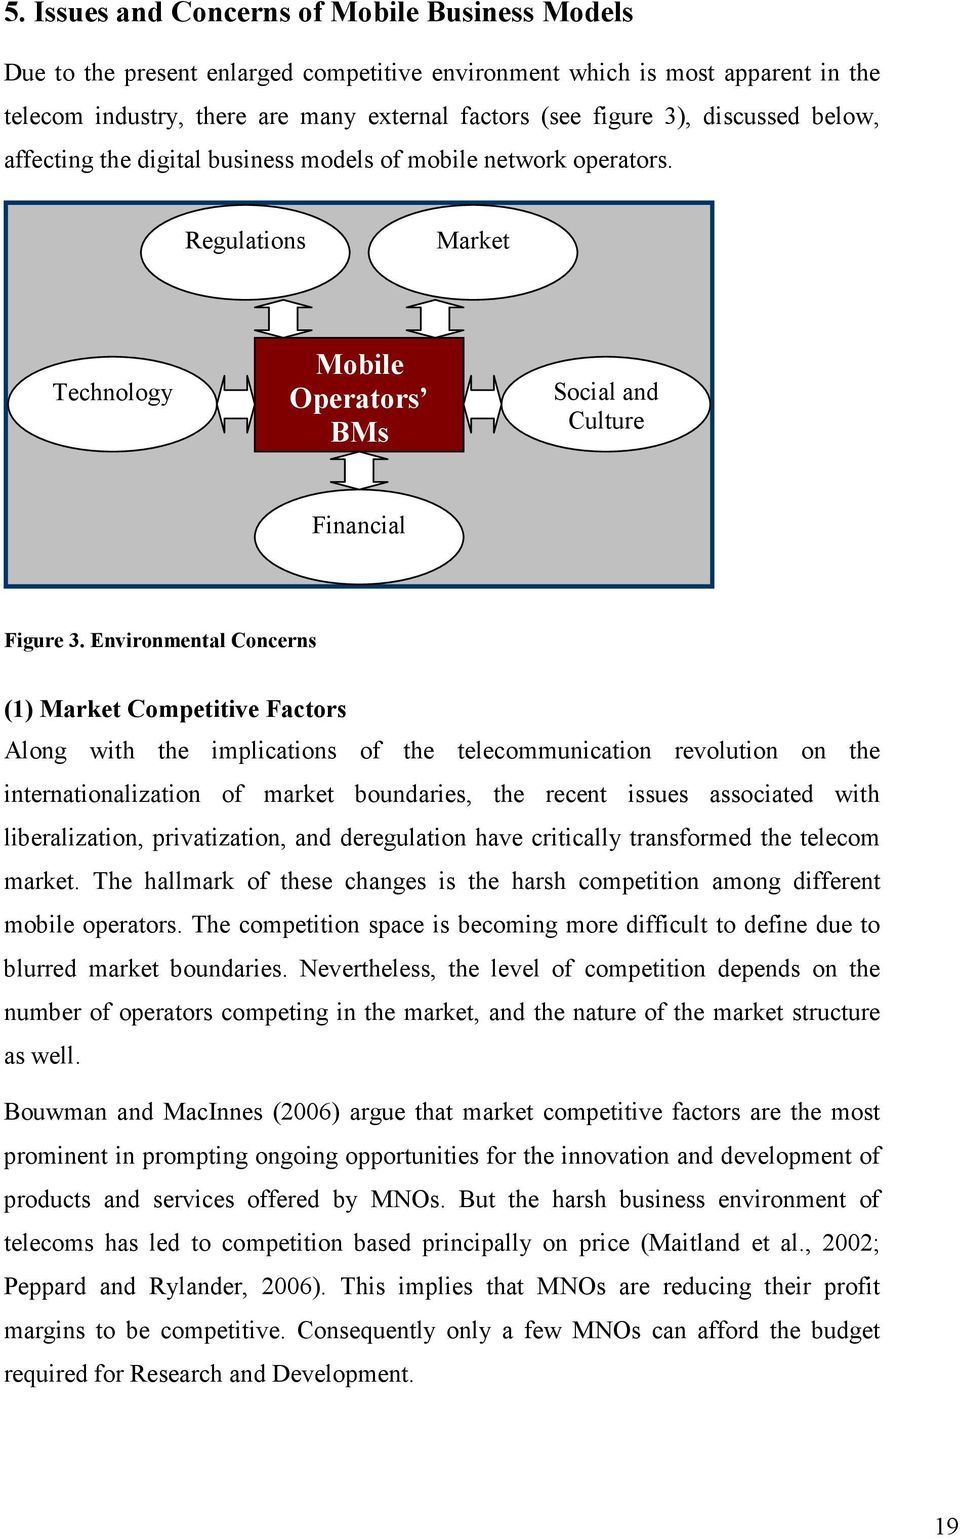 Environmental Concerns (1) Market Competitive Factors Along with the implications of the telecommunication revolution on the internationalization of market boundaries, the recent issues associated